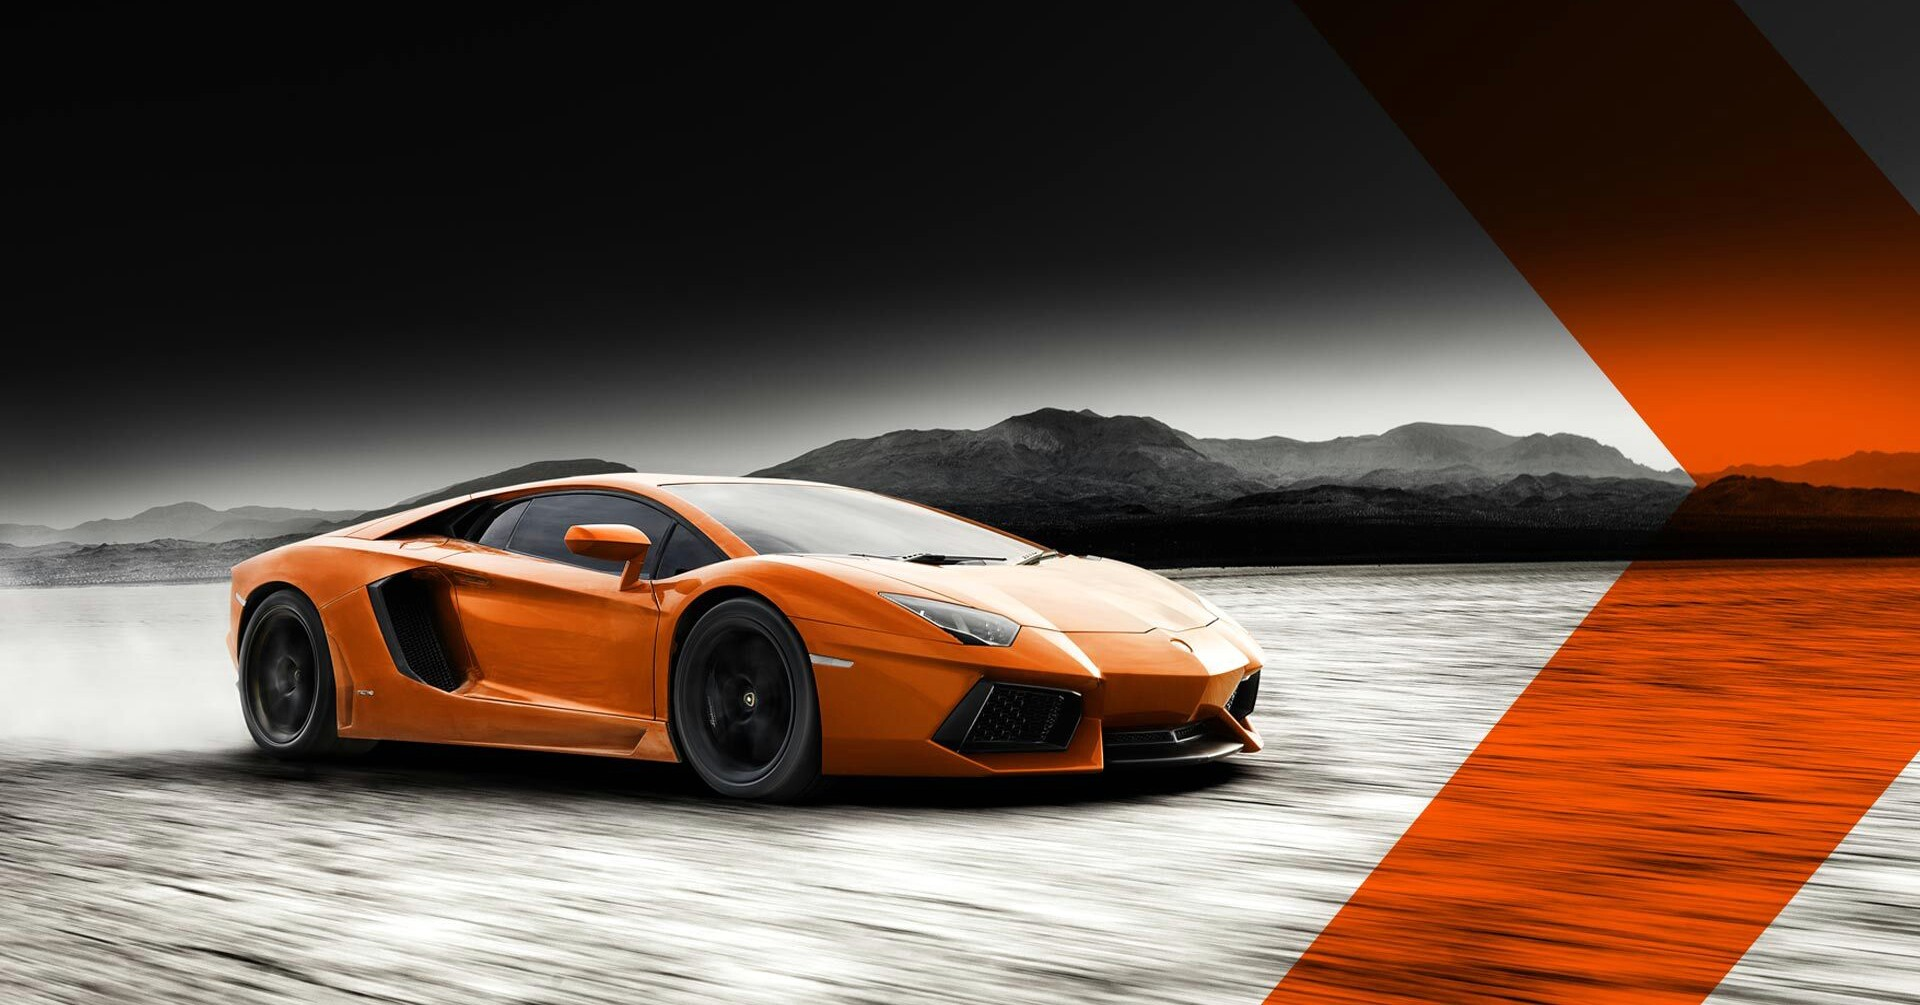 3D Racing <b>Car Wallpaper</b> - Android Apps on Google Play